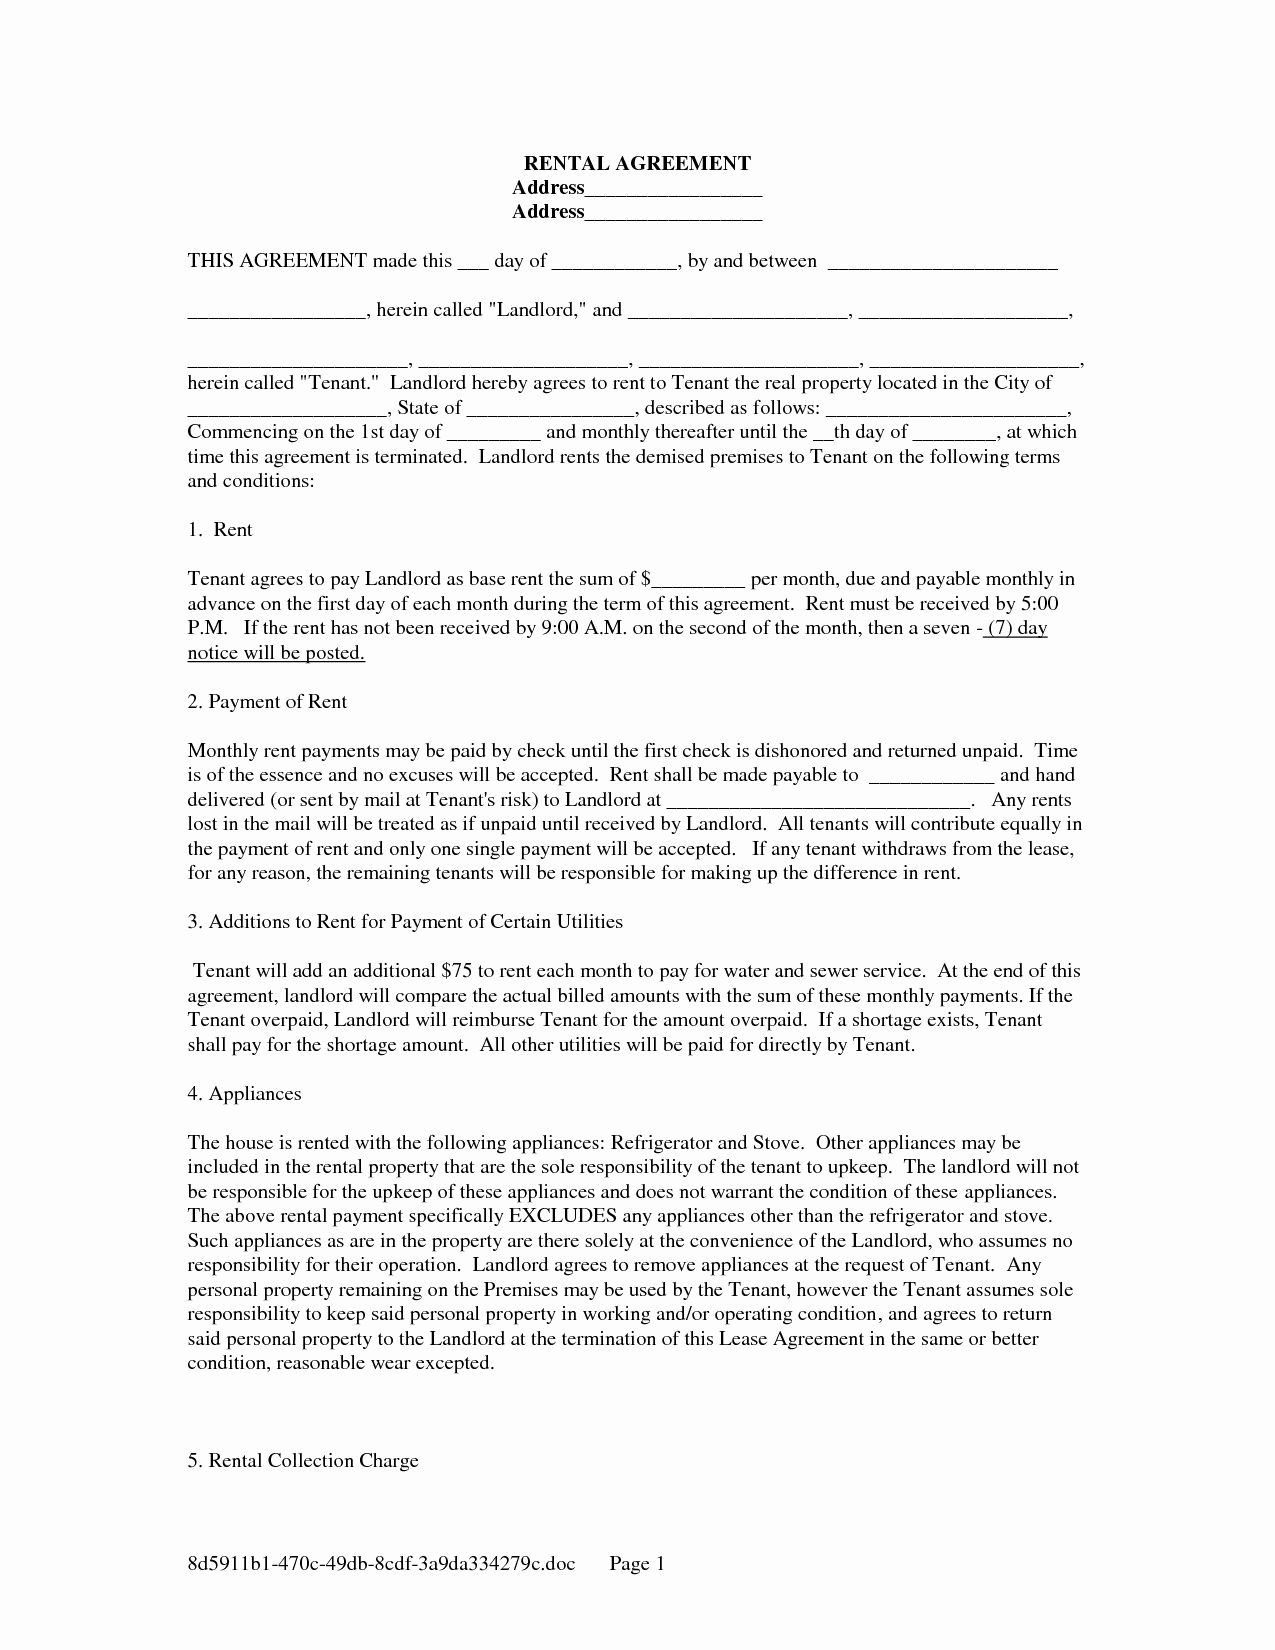 Rental Agreement Template Free Fresh Free Copy Rental Lease Agreement